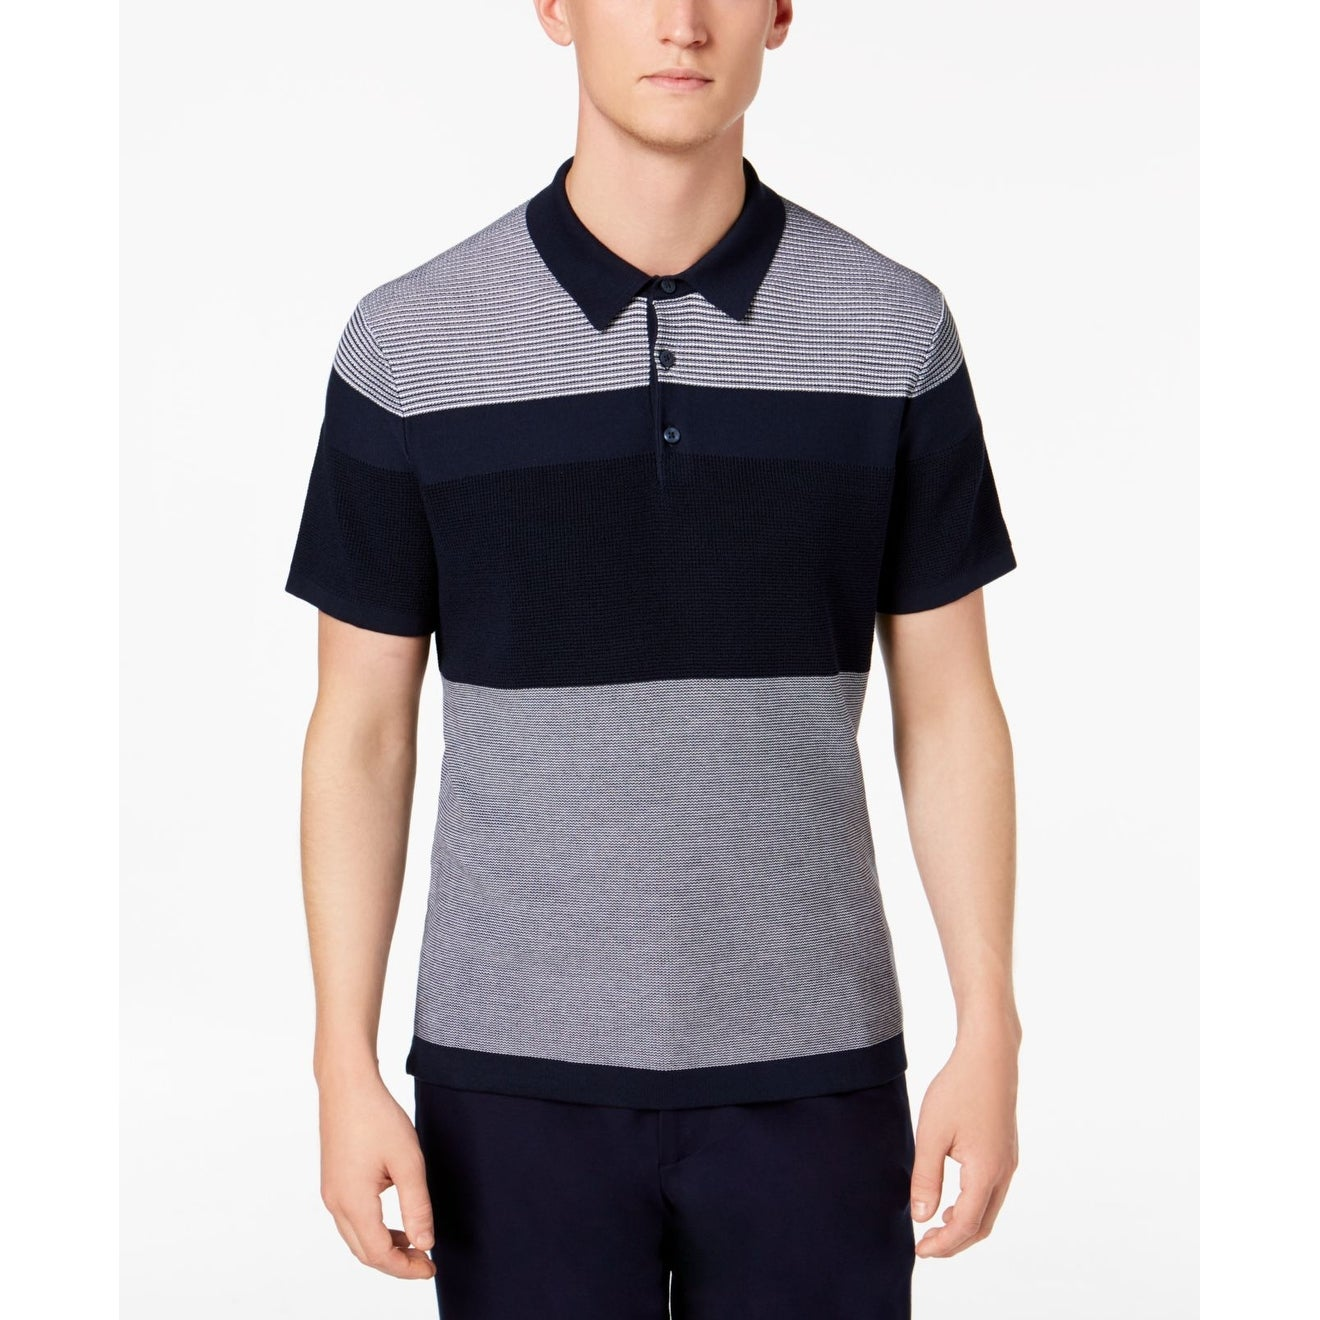 79d722fe492 Michael Kors Shirts | Find Great Men's Clothing Deals Shopping at Overstock